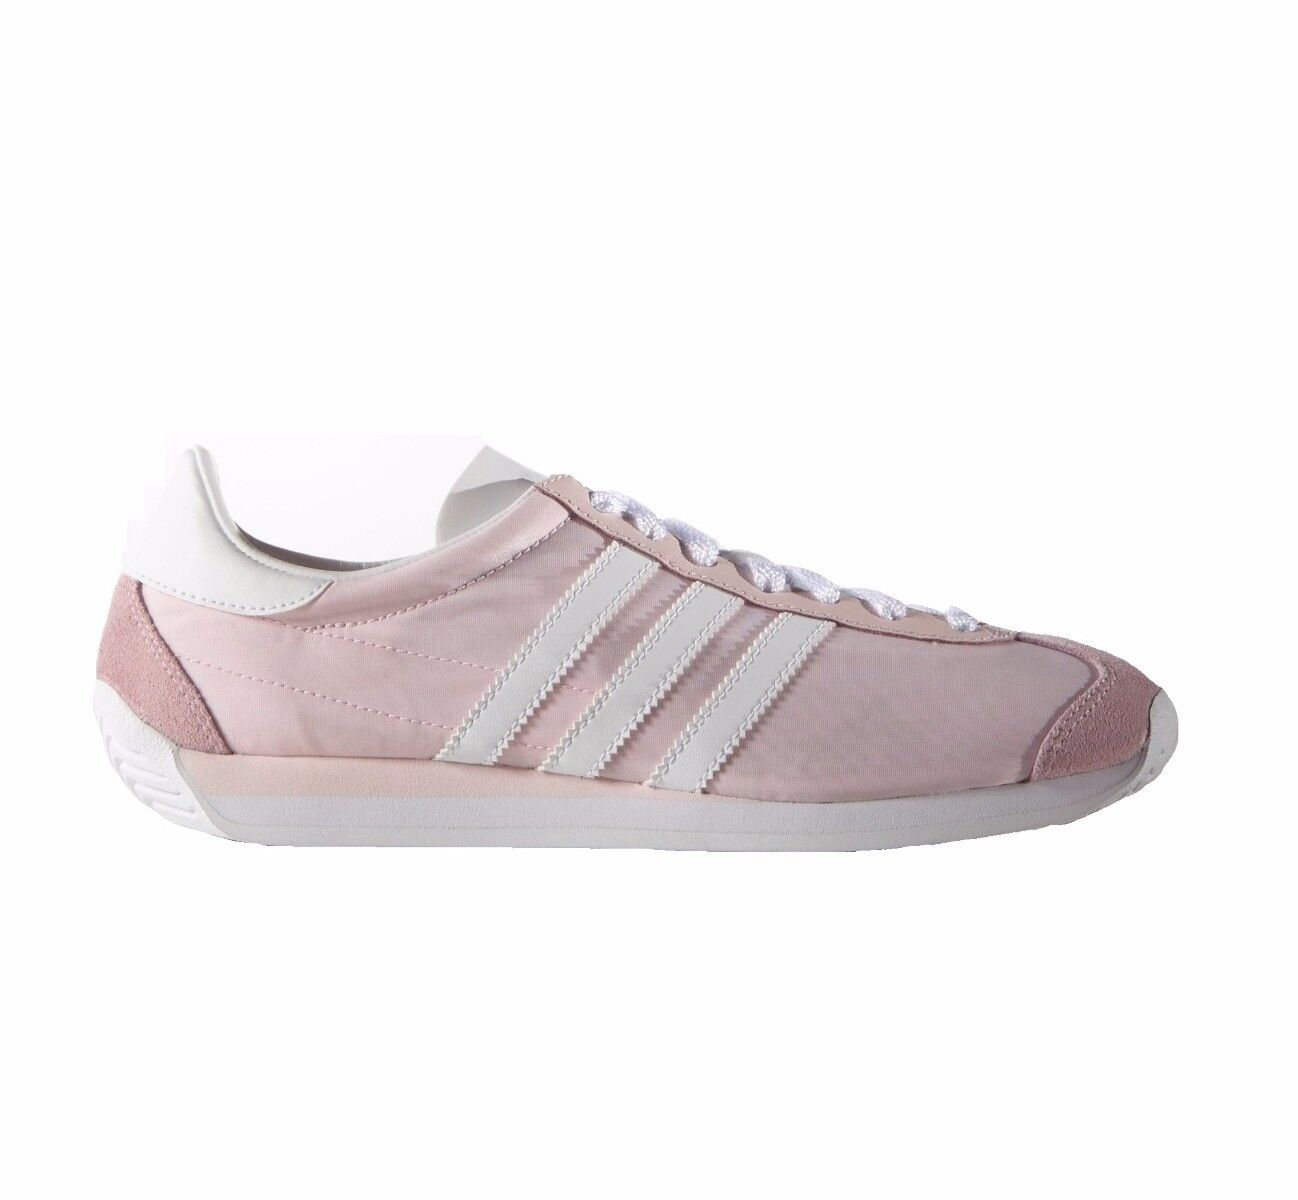 Adidas Country OG damen Running schuhe Trainer Größe 3.5 to 6.5 Halpin New Run